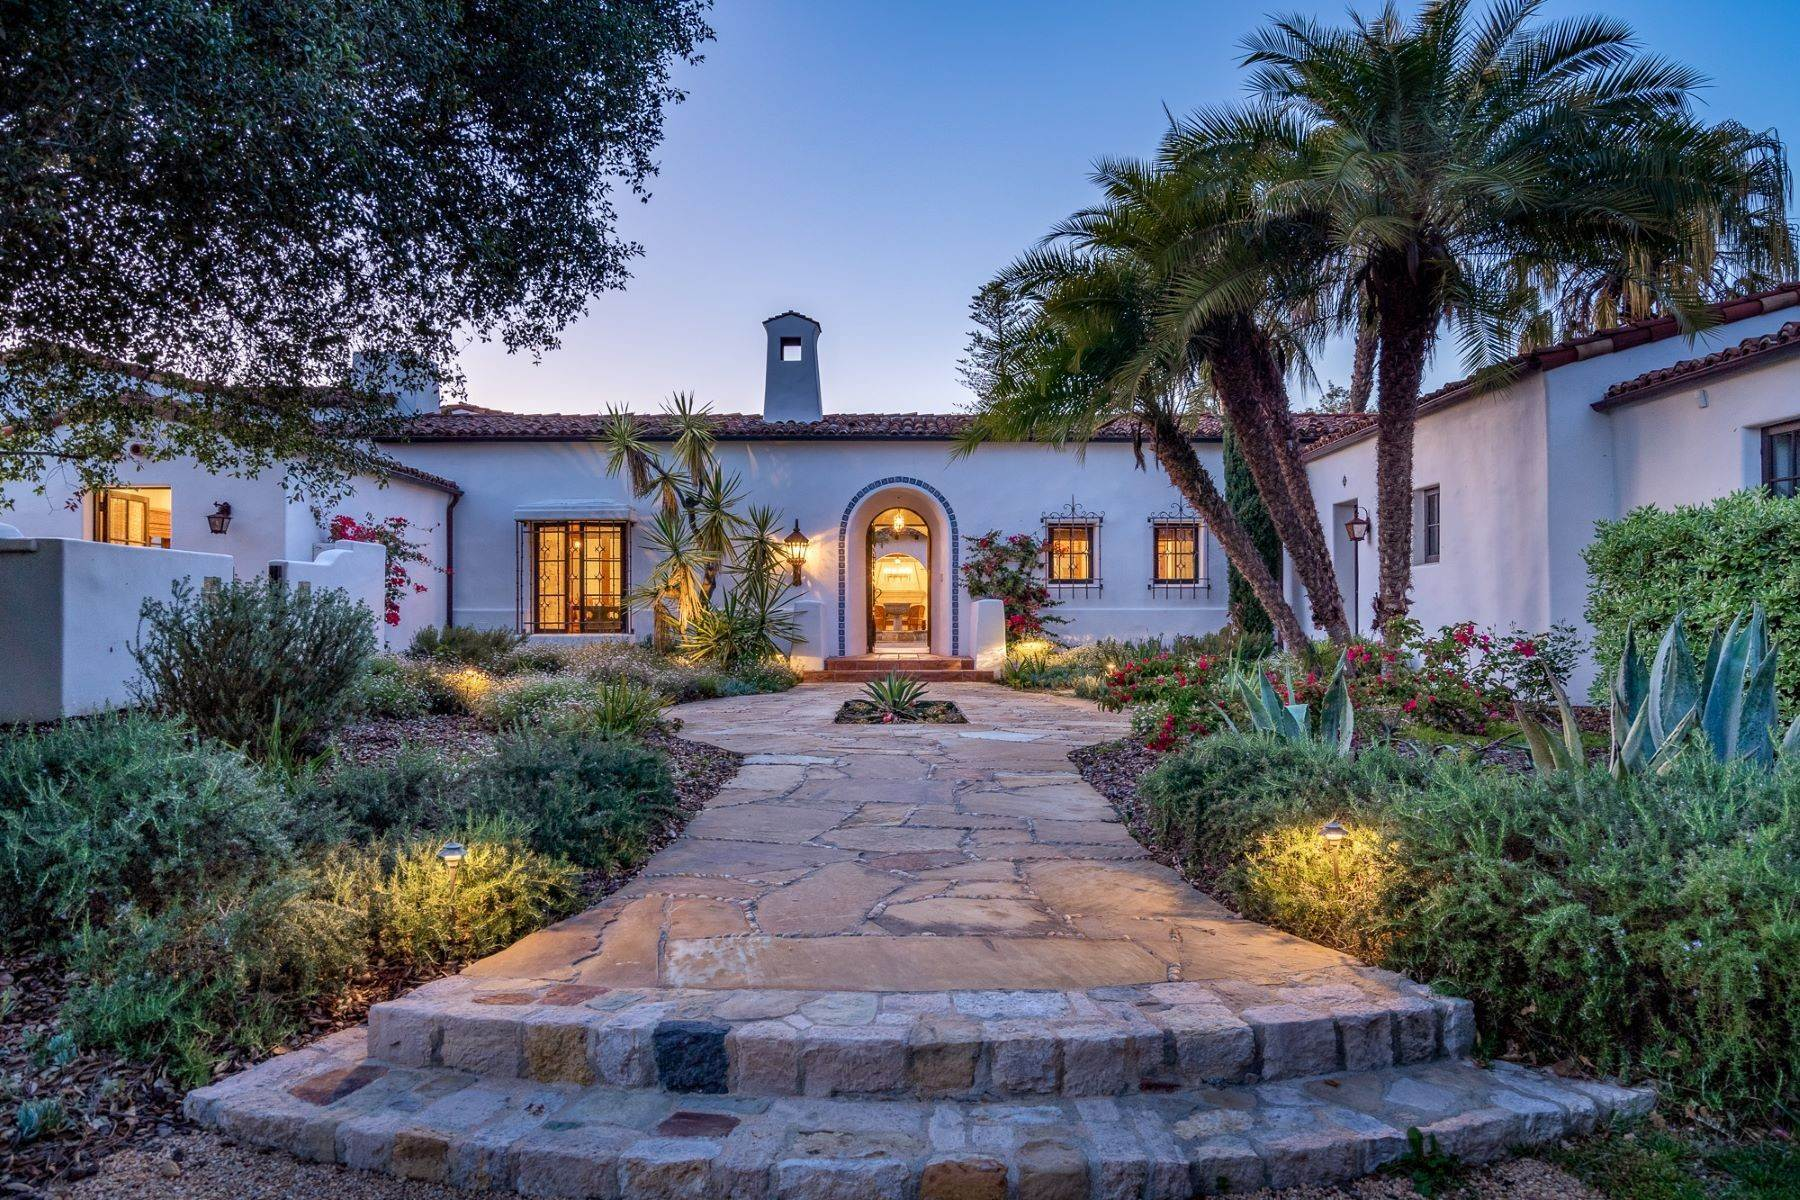 Property for Sale at 17515 Avenida De Acacias, Rancho Santa Fe, CA 92067 17515 Avenida De Acacias Rancho Santa Fe, California 92067 United States